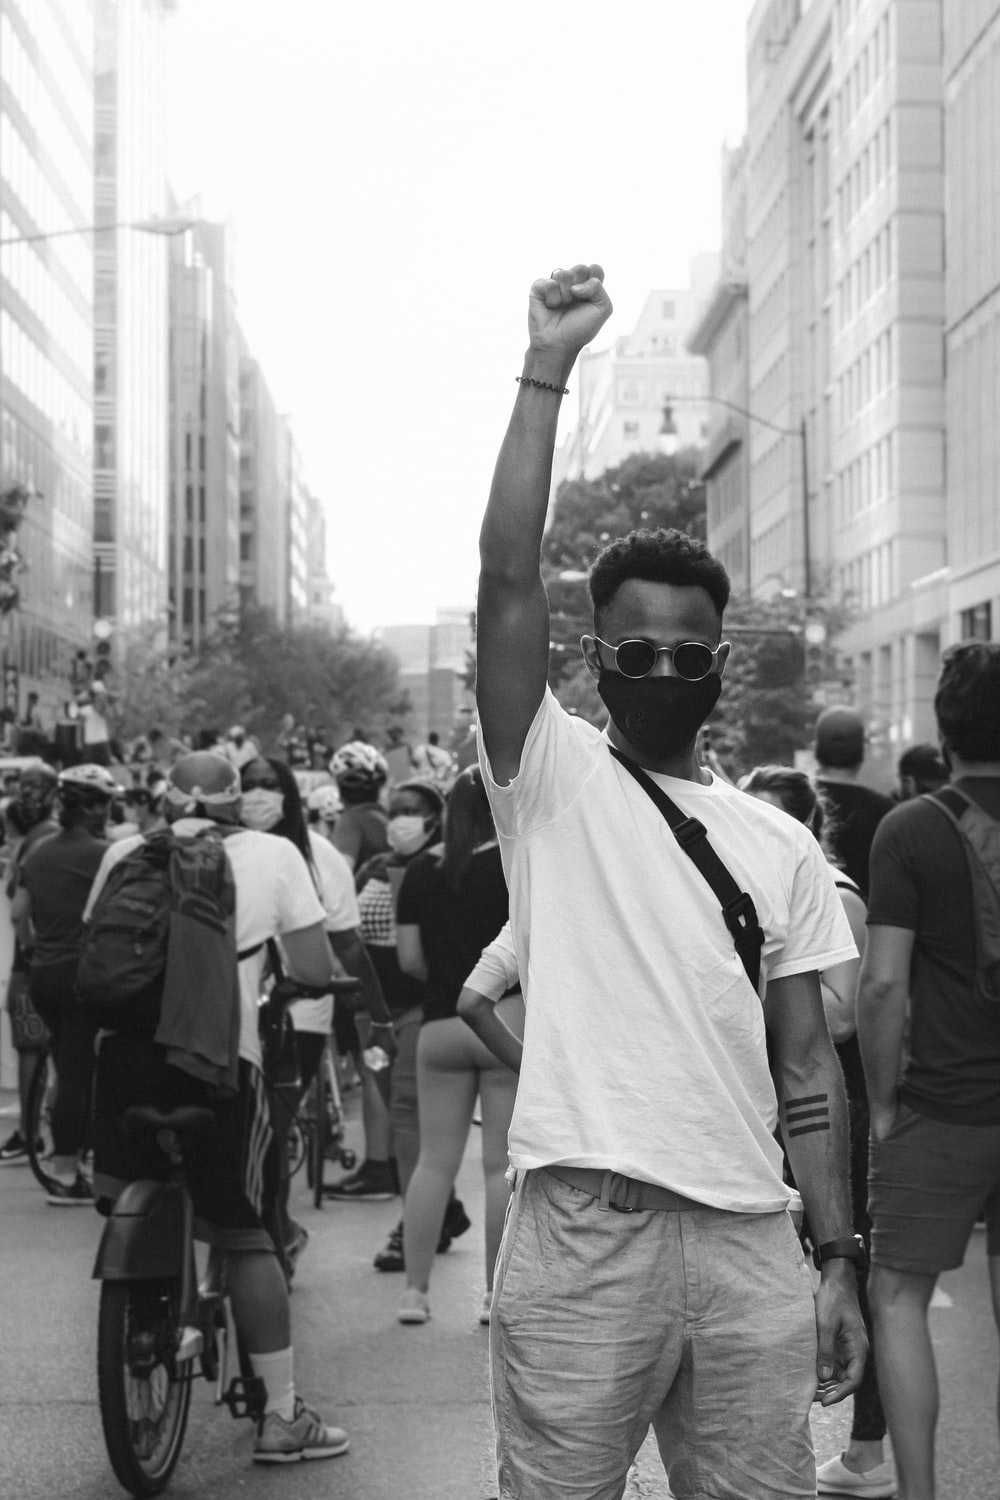 grayscale photo of man in white t-shirt raising his hands